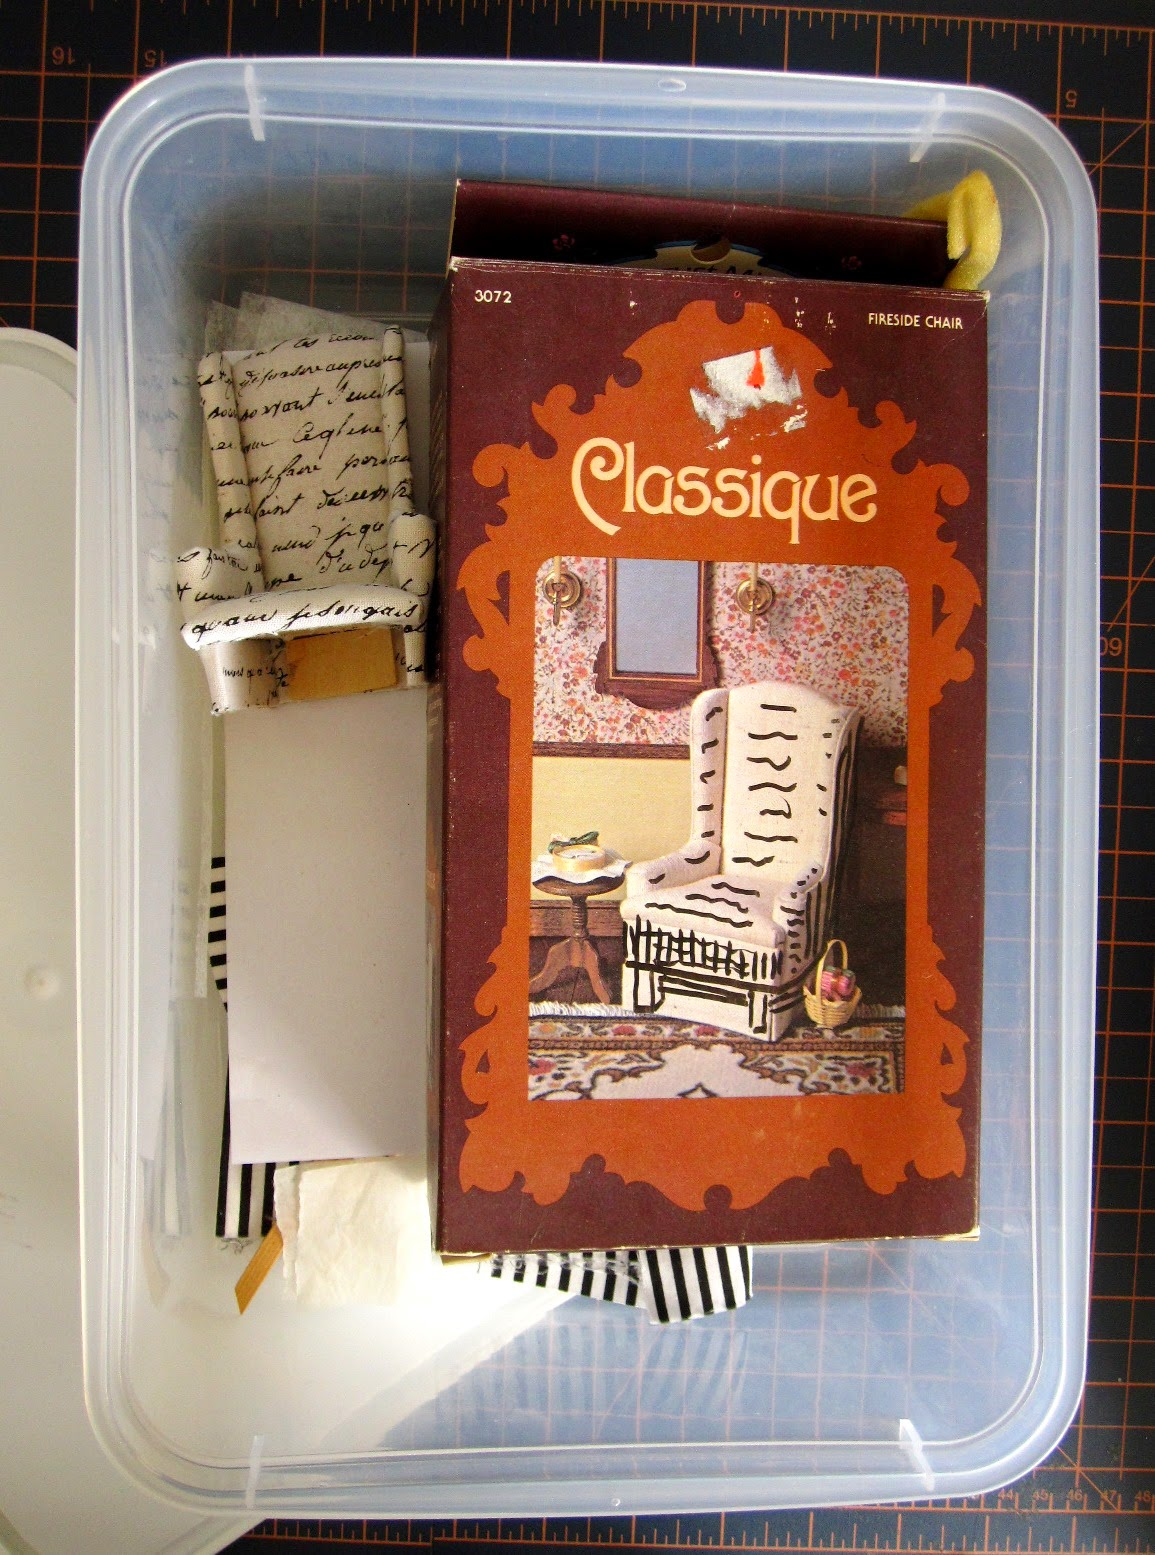 Plastic storage box containing a dolls' house miniature wing chair kit package, a half-finished chair and various pieces of fabric.